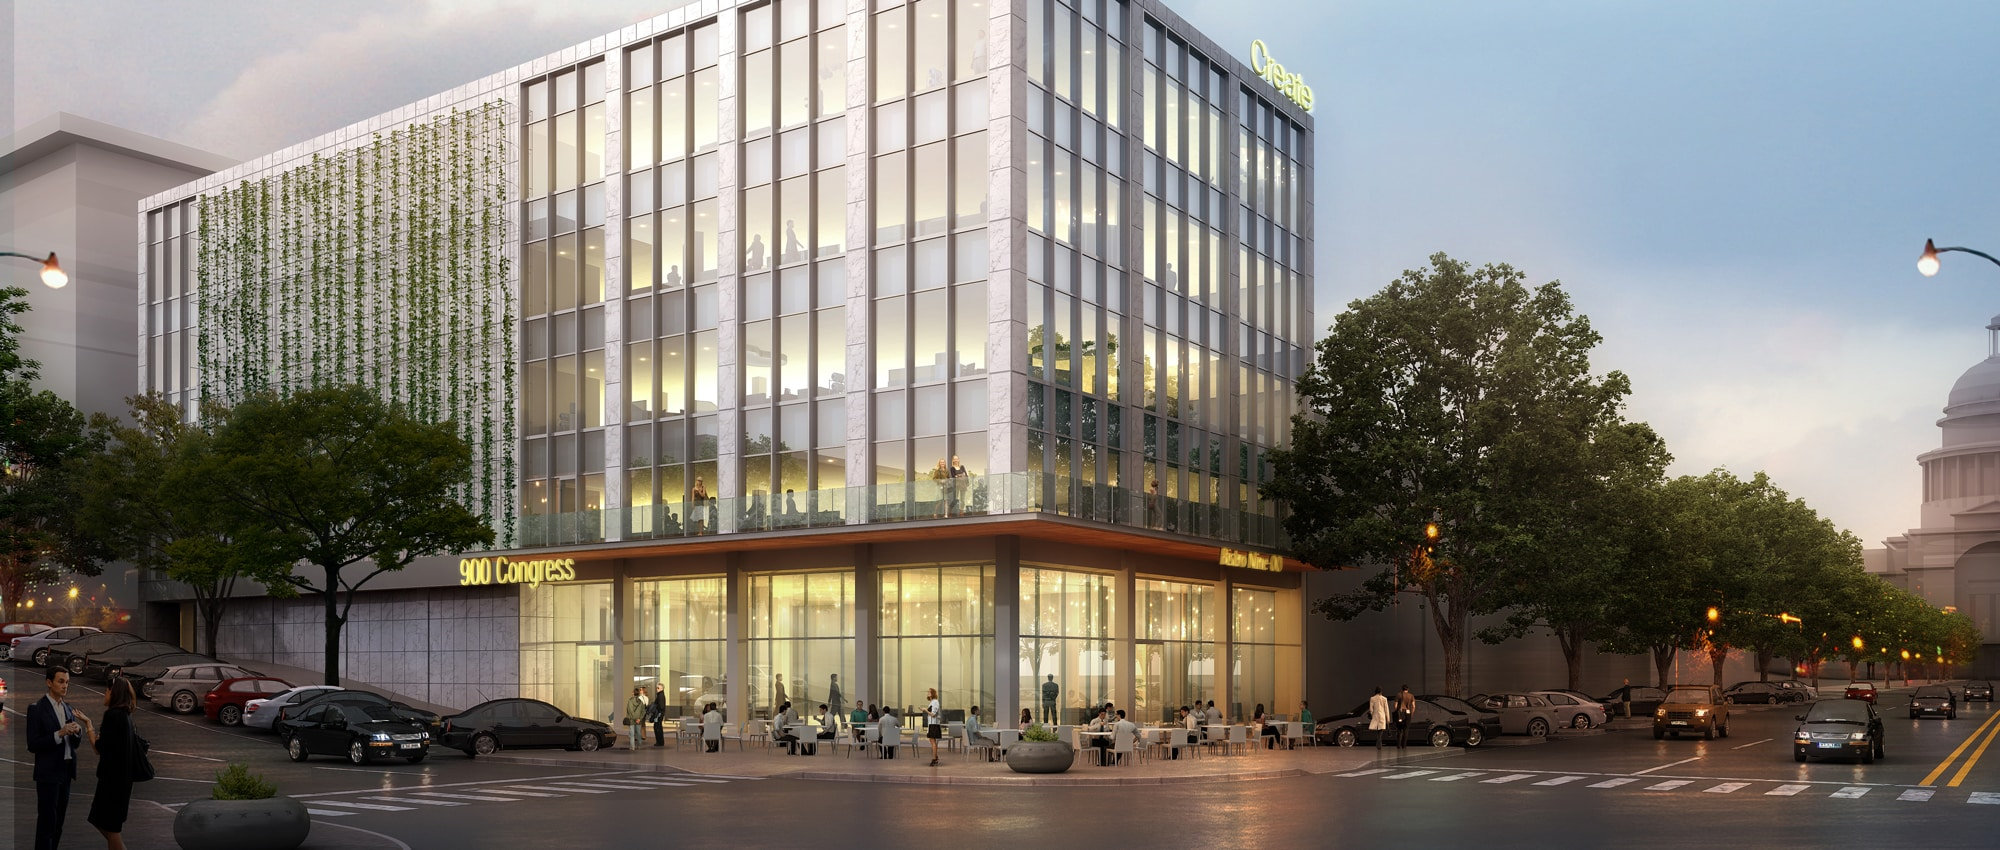 900 Congress New Building Exterior | Office Space for Lease in Austin, Texas